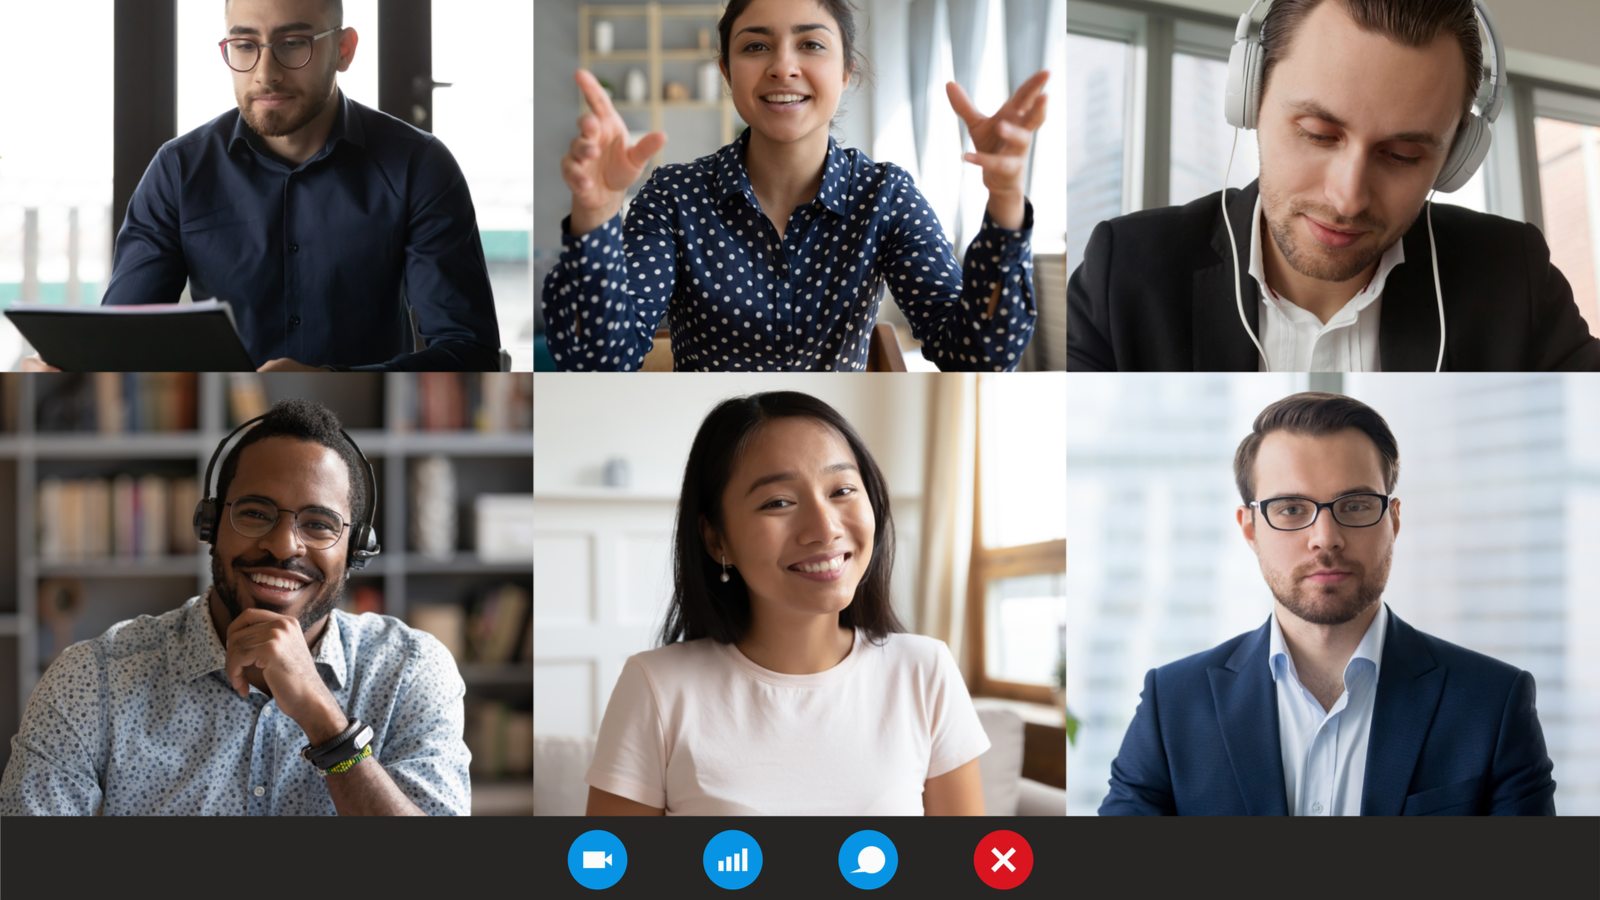 Six people talking and listening on a professional video call